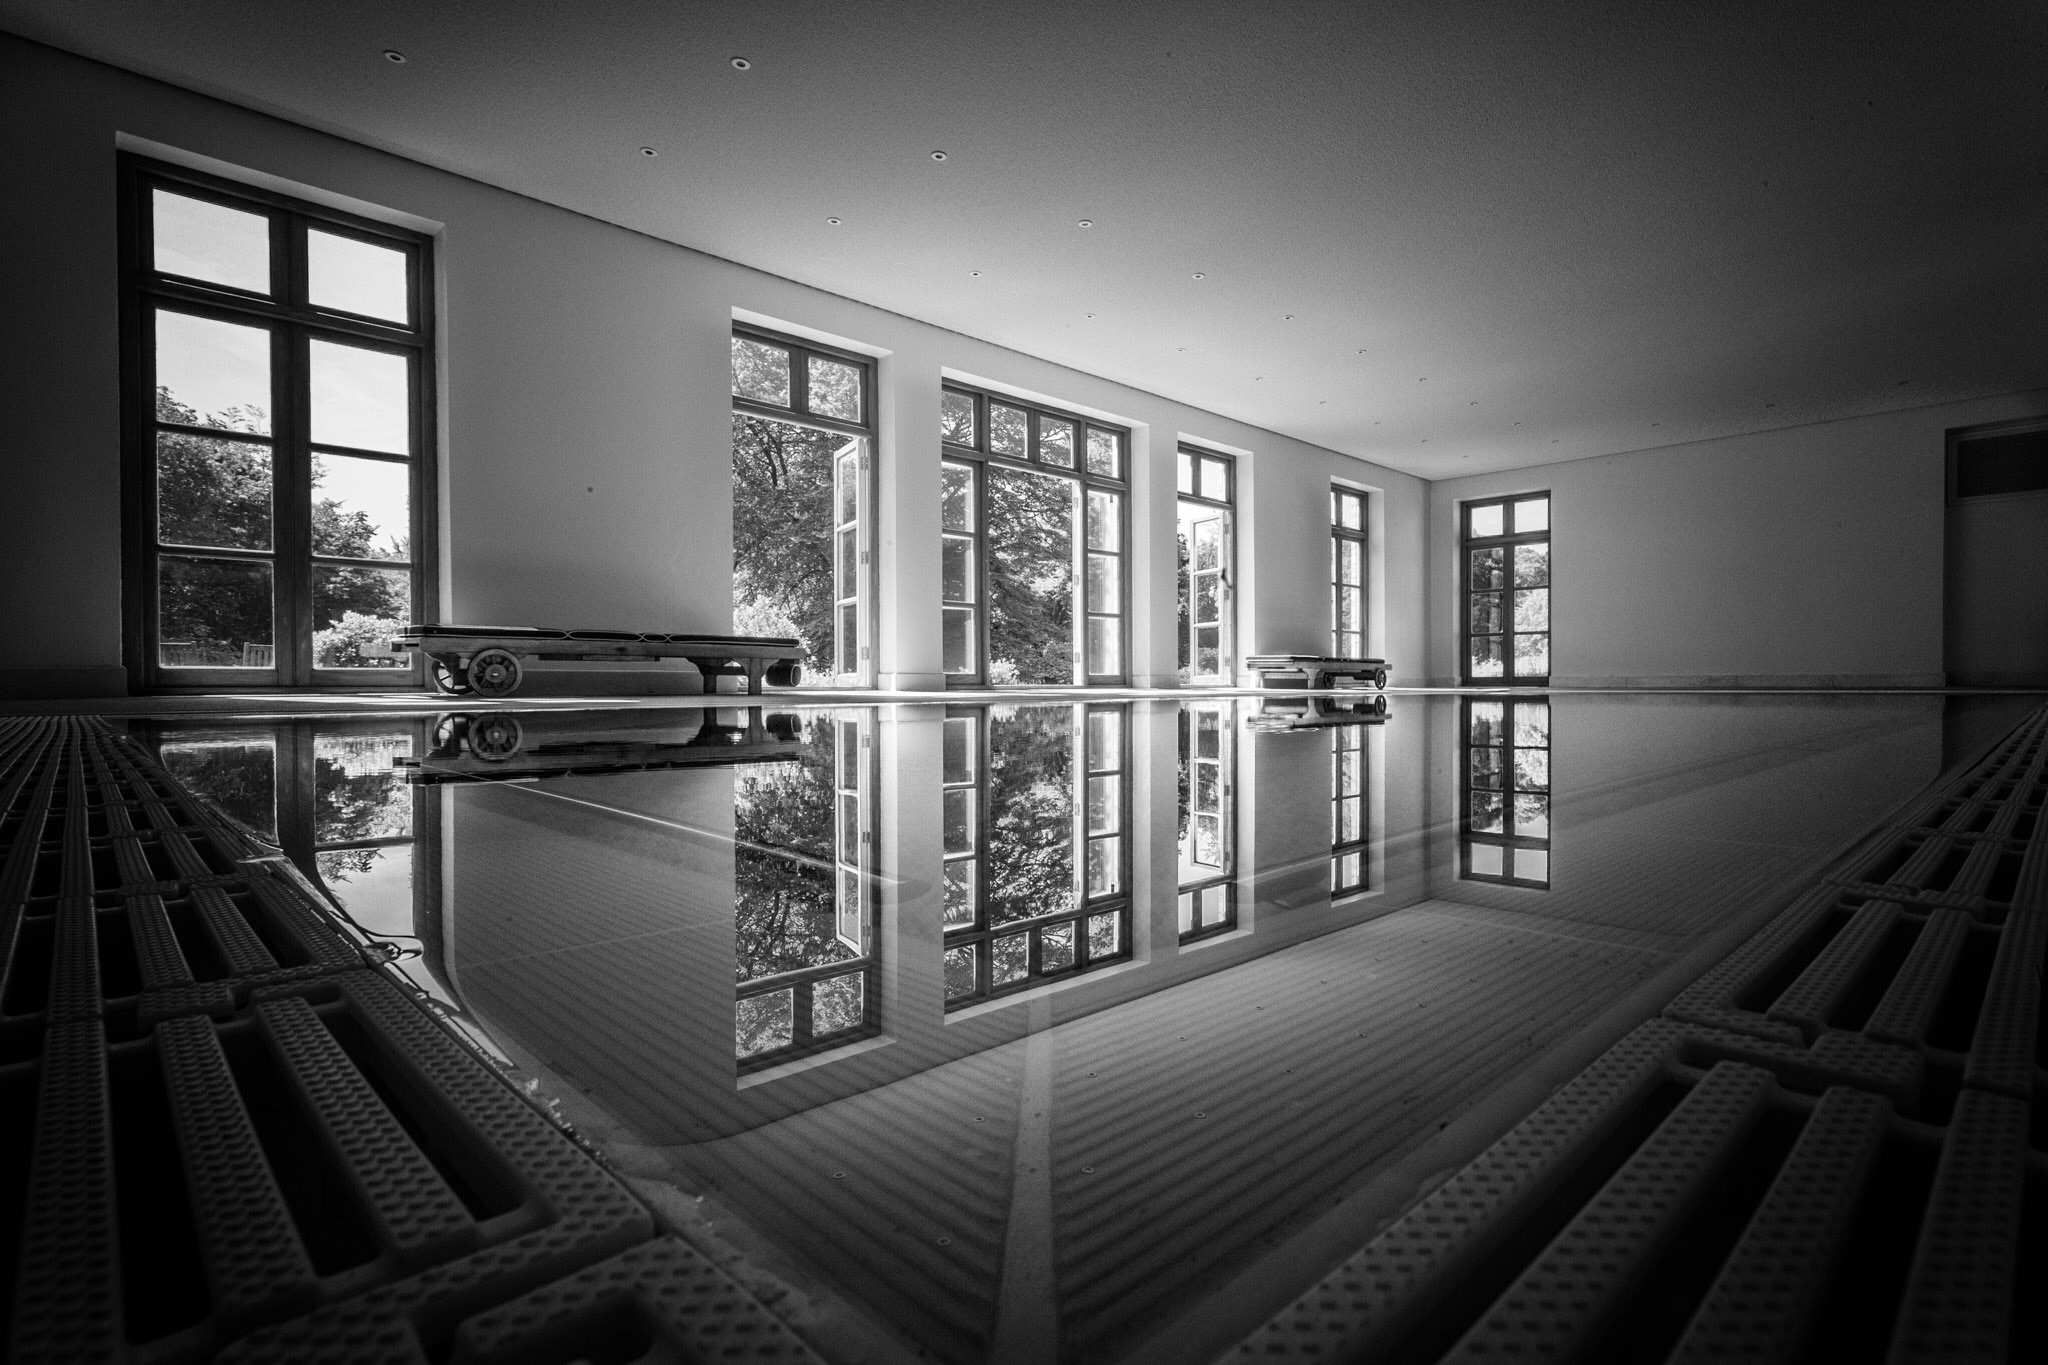 Swimming pool in a lovely private country house in Dorset